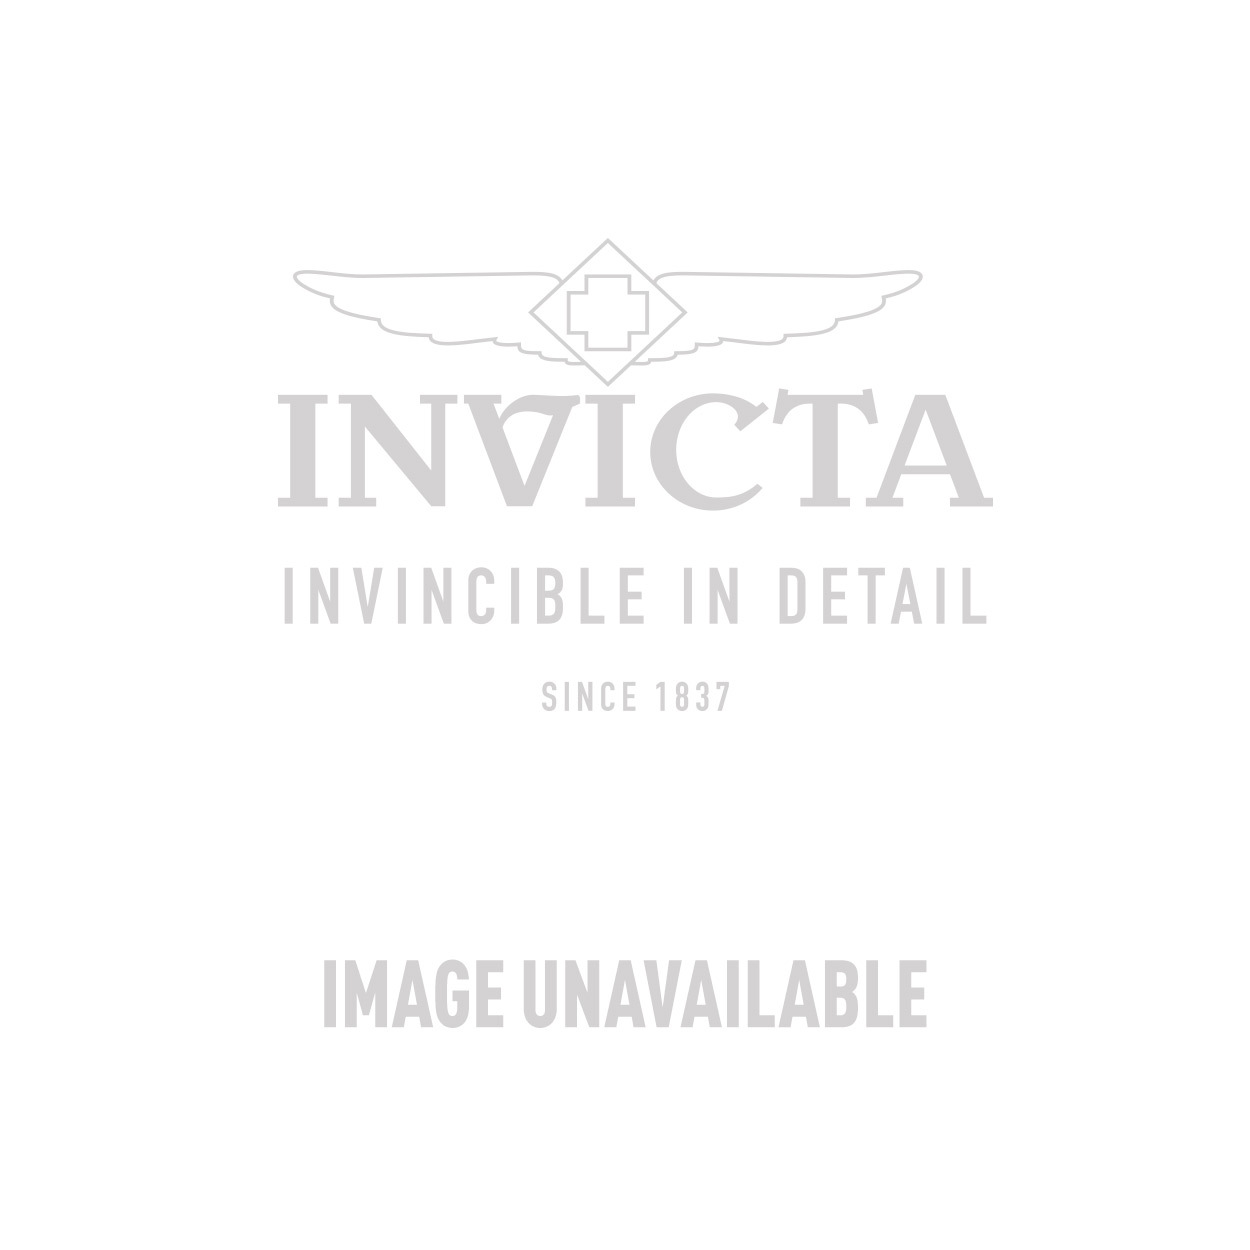 Invicta Subaqua Automatic Watch - Stainless Steel case Stainless Steel band  - Model 10478